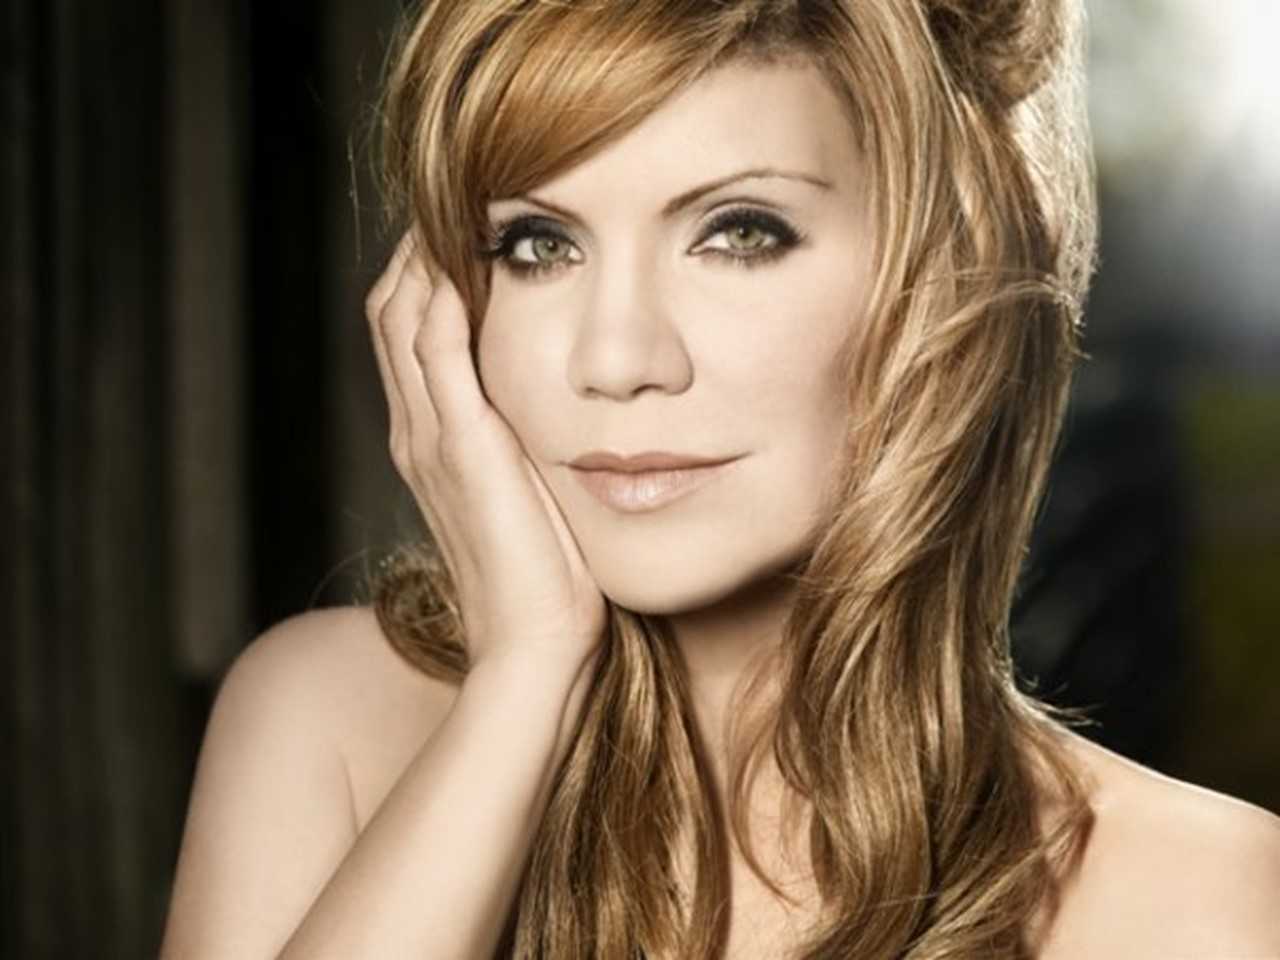 alison krauss 'losing you